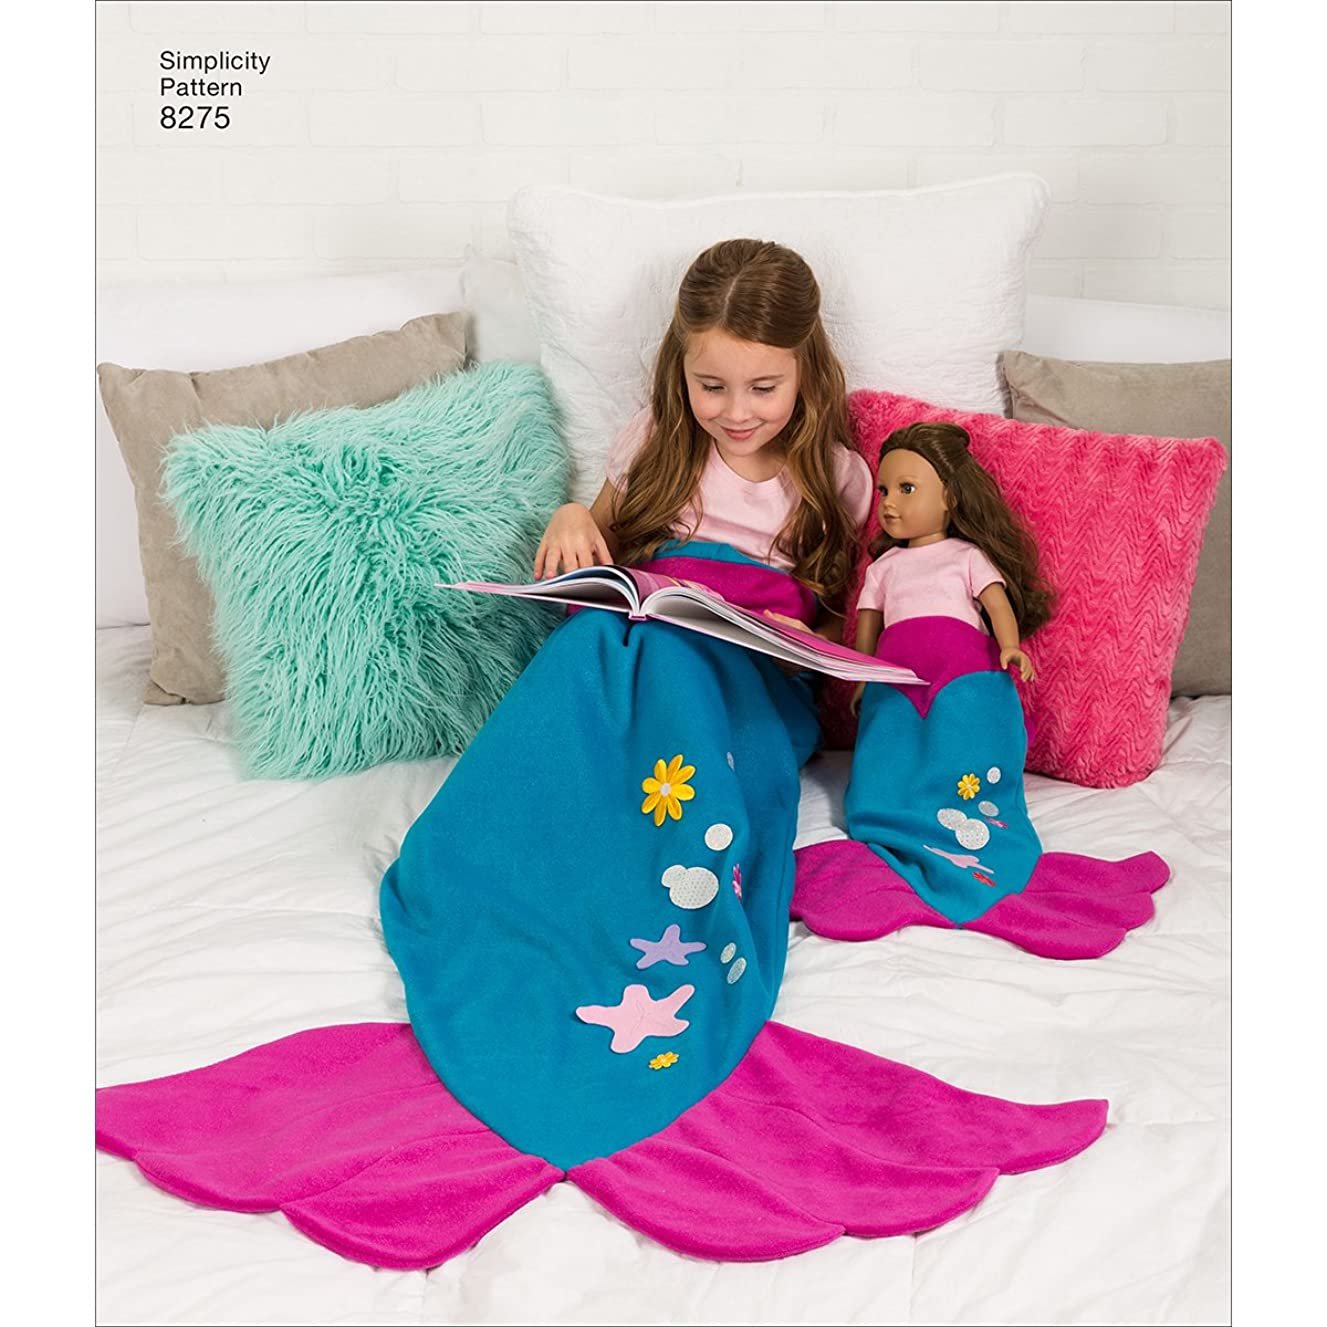 Simplicity 8275 Adult's, Girl's and 18'' Doll's Mermaid Tail Blanket Sewing Pattern, Size A